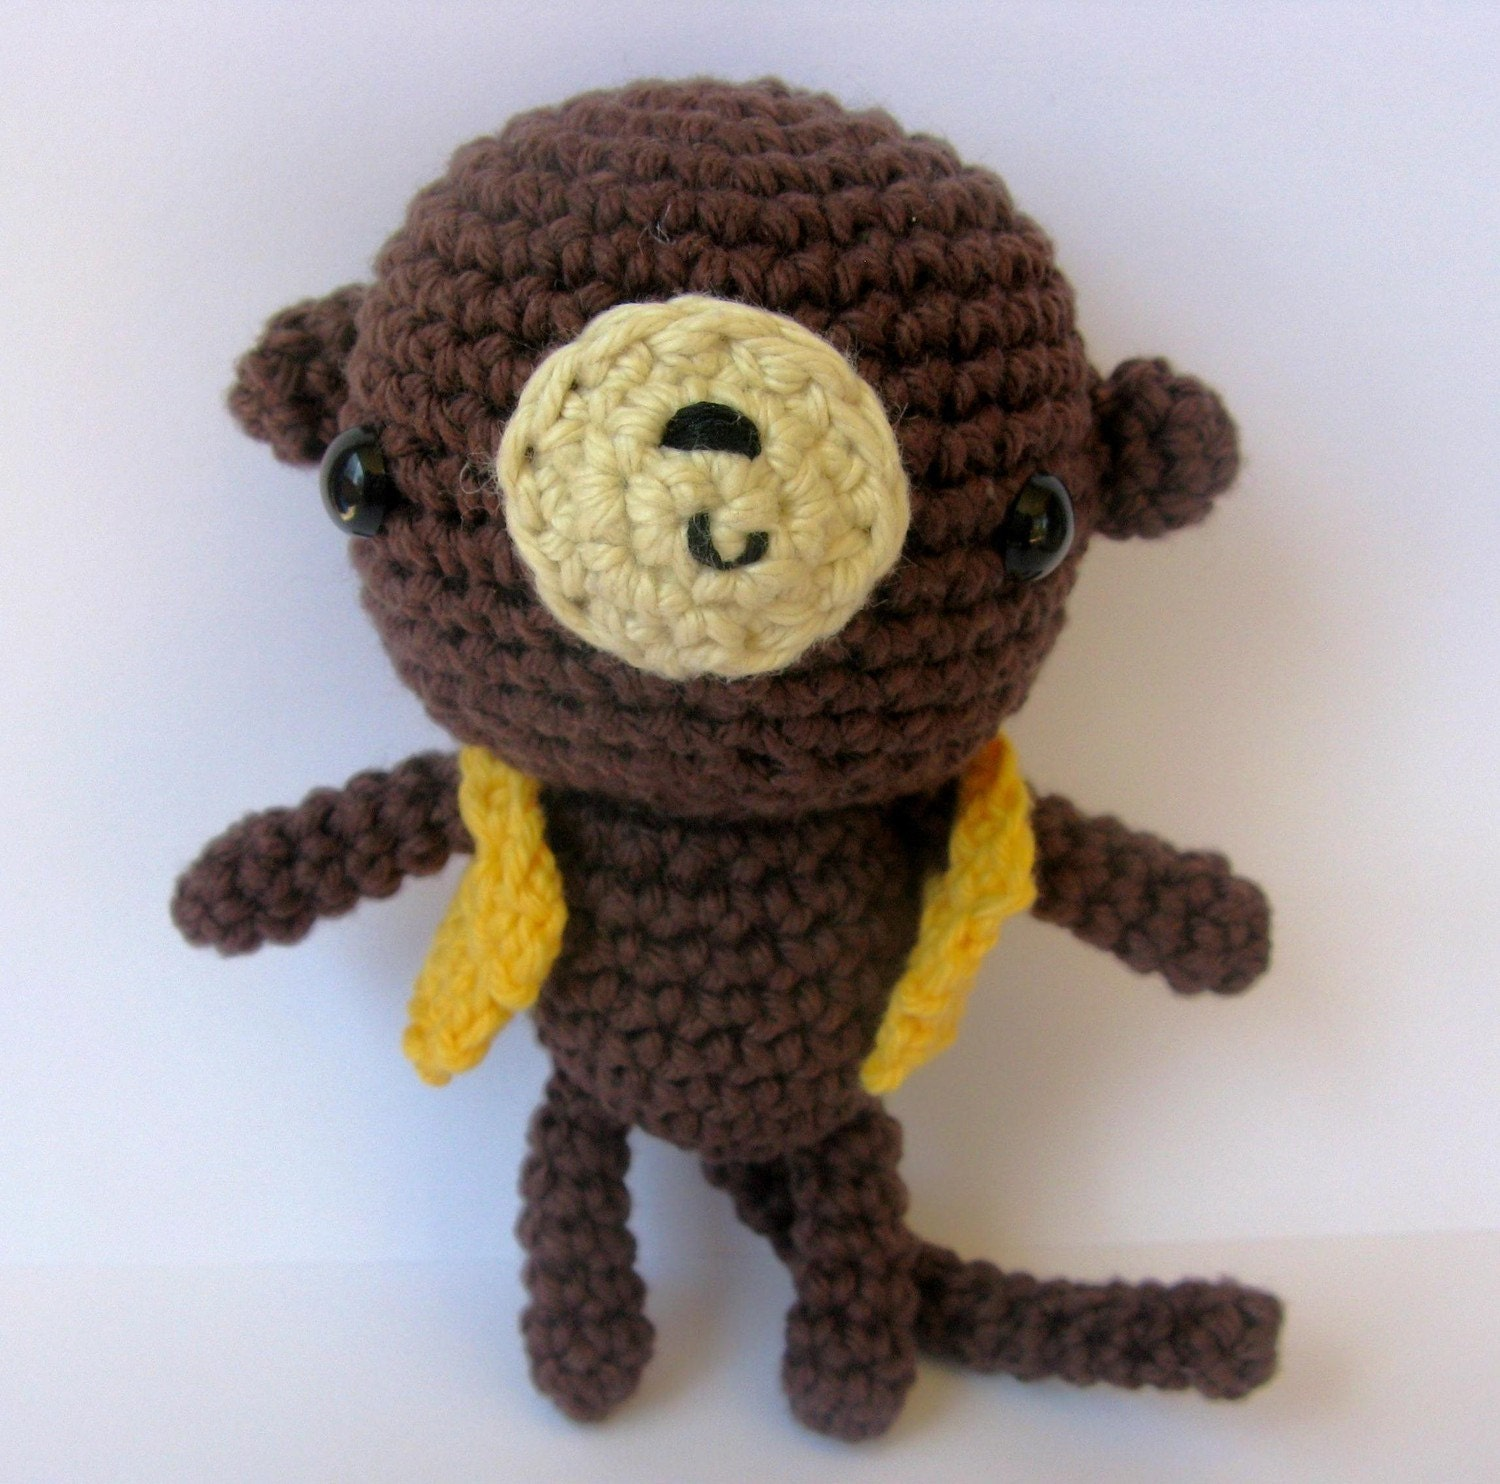 Amigurumi Monkey Etsy : Little Amigurumi Monkey crochet pattern by anapaulaoli on Etsy